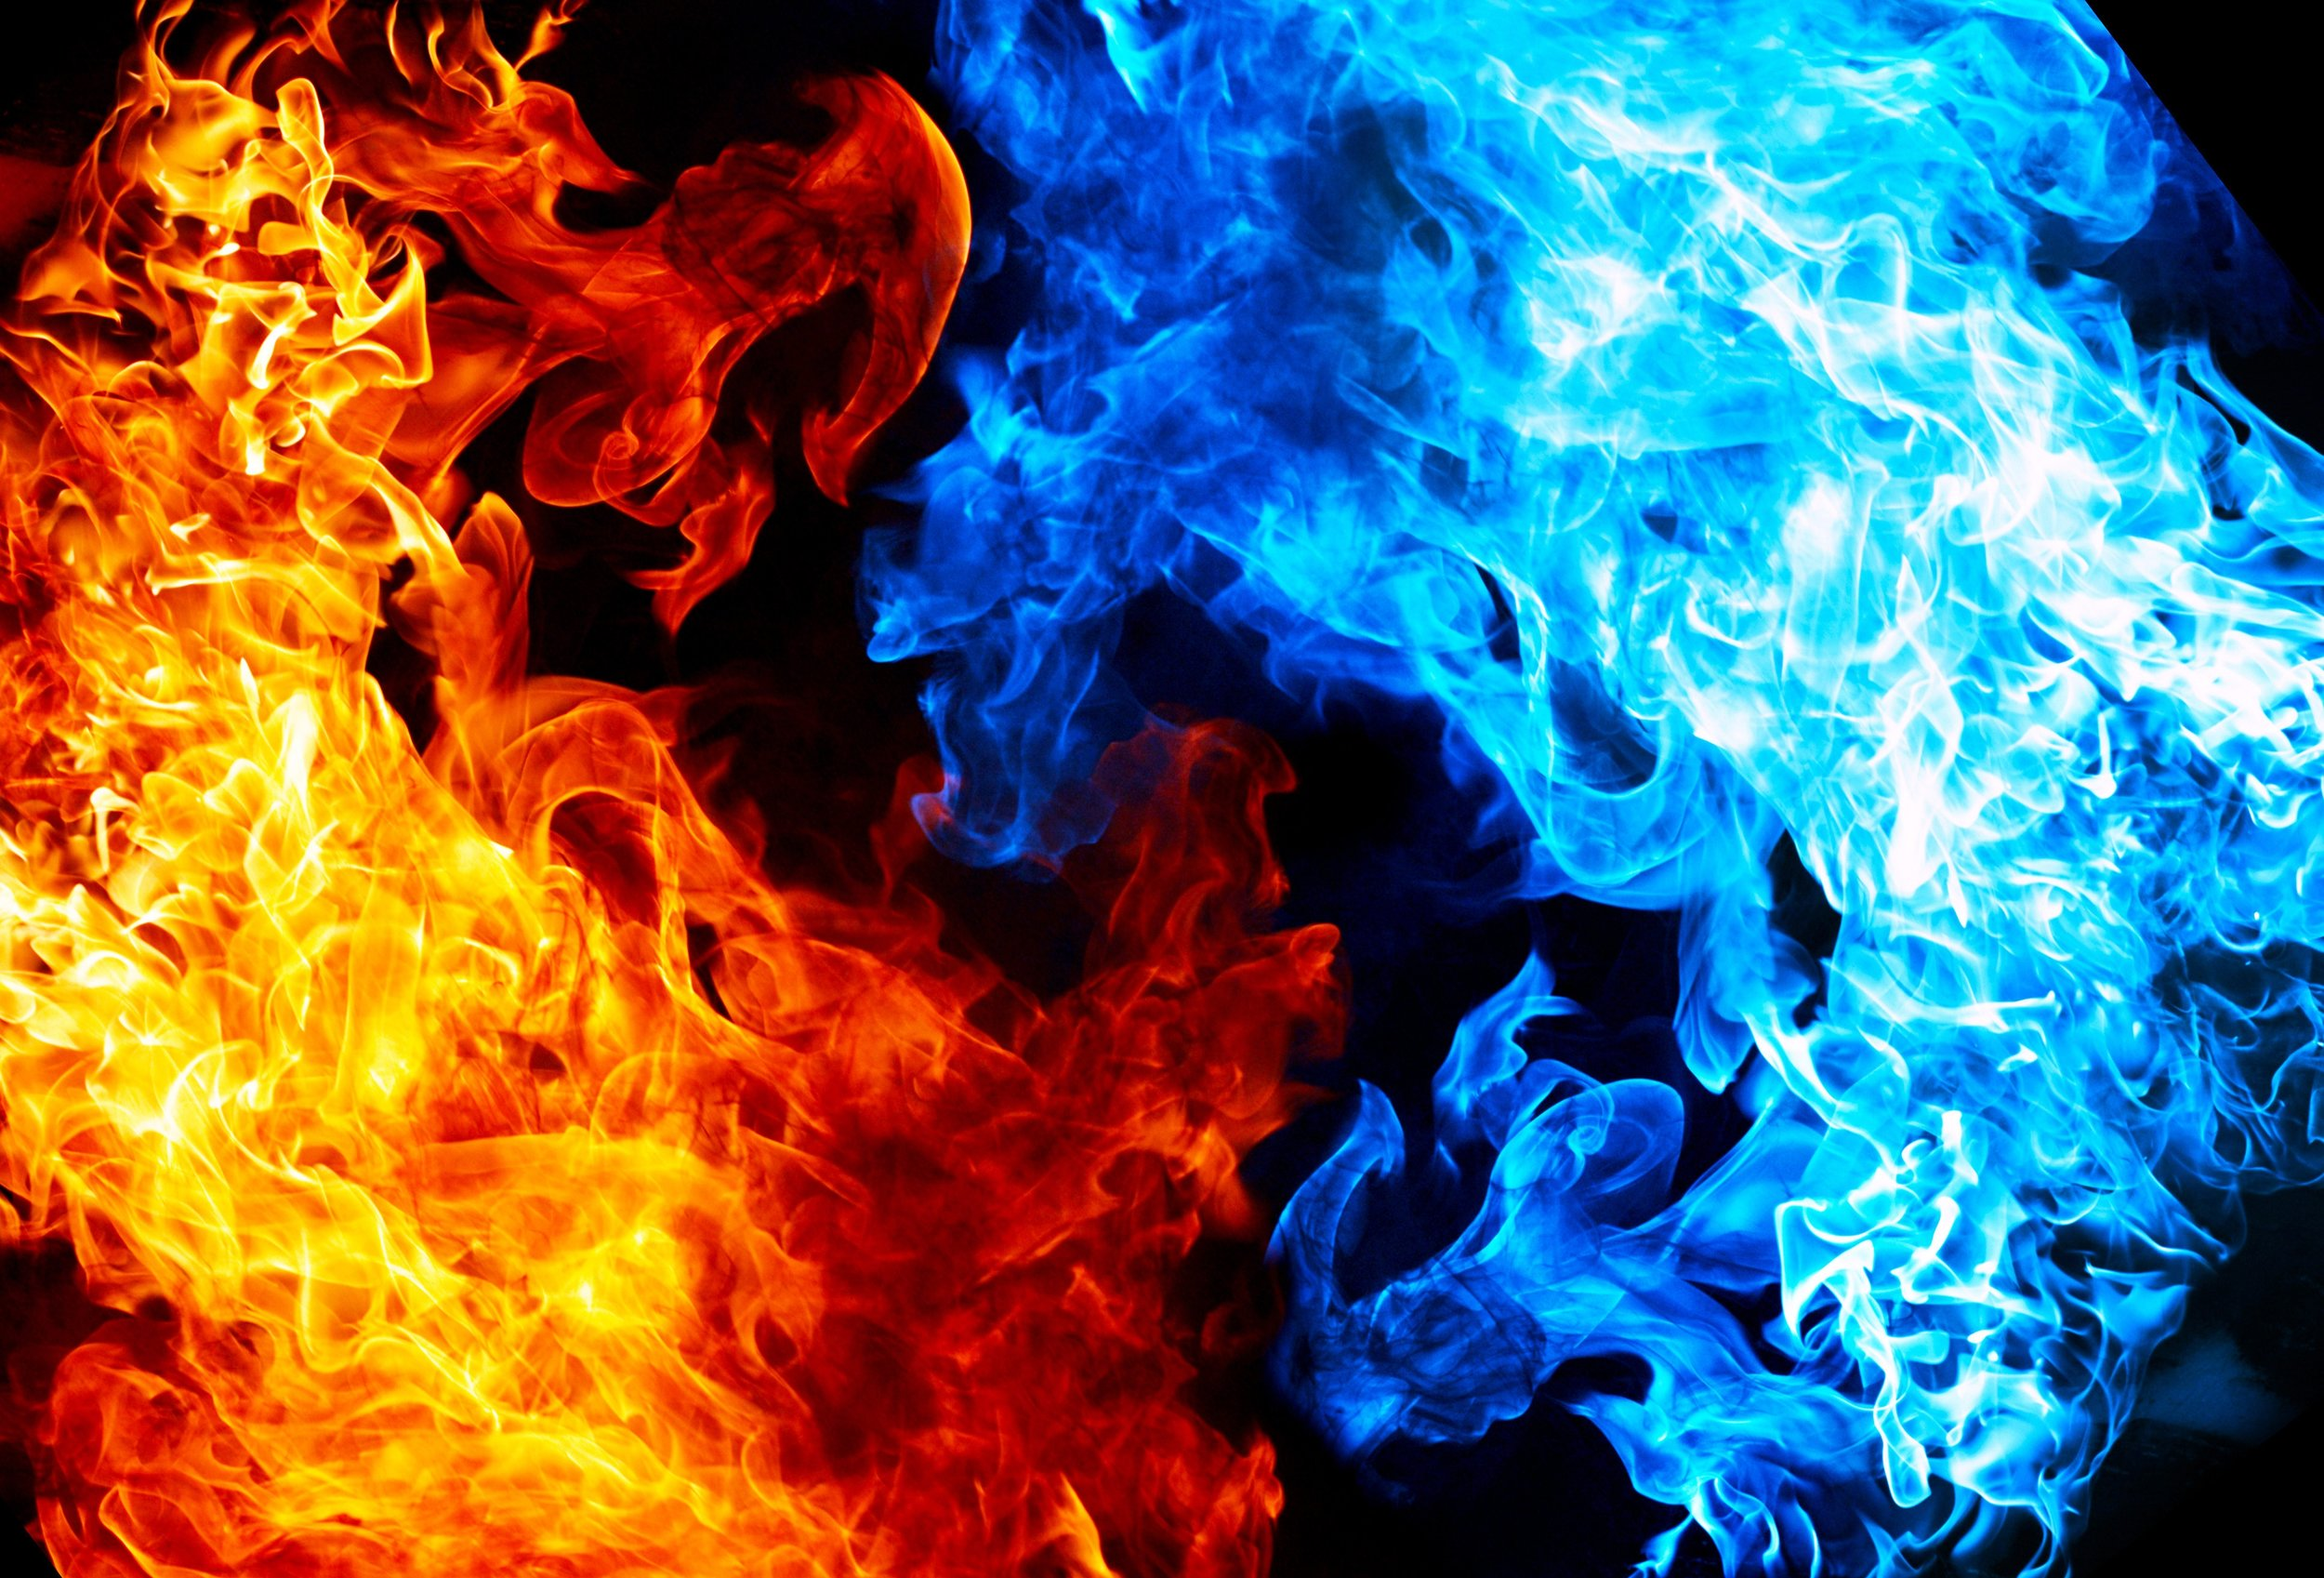 Keep the fire within you burning bright.